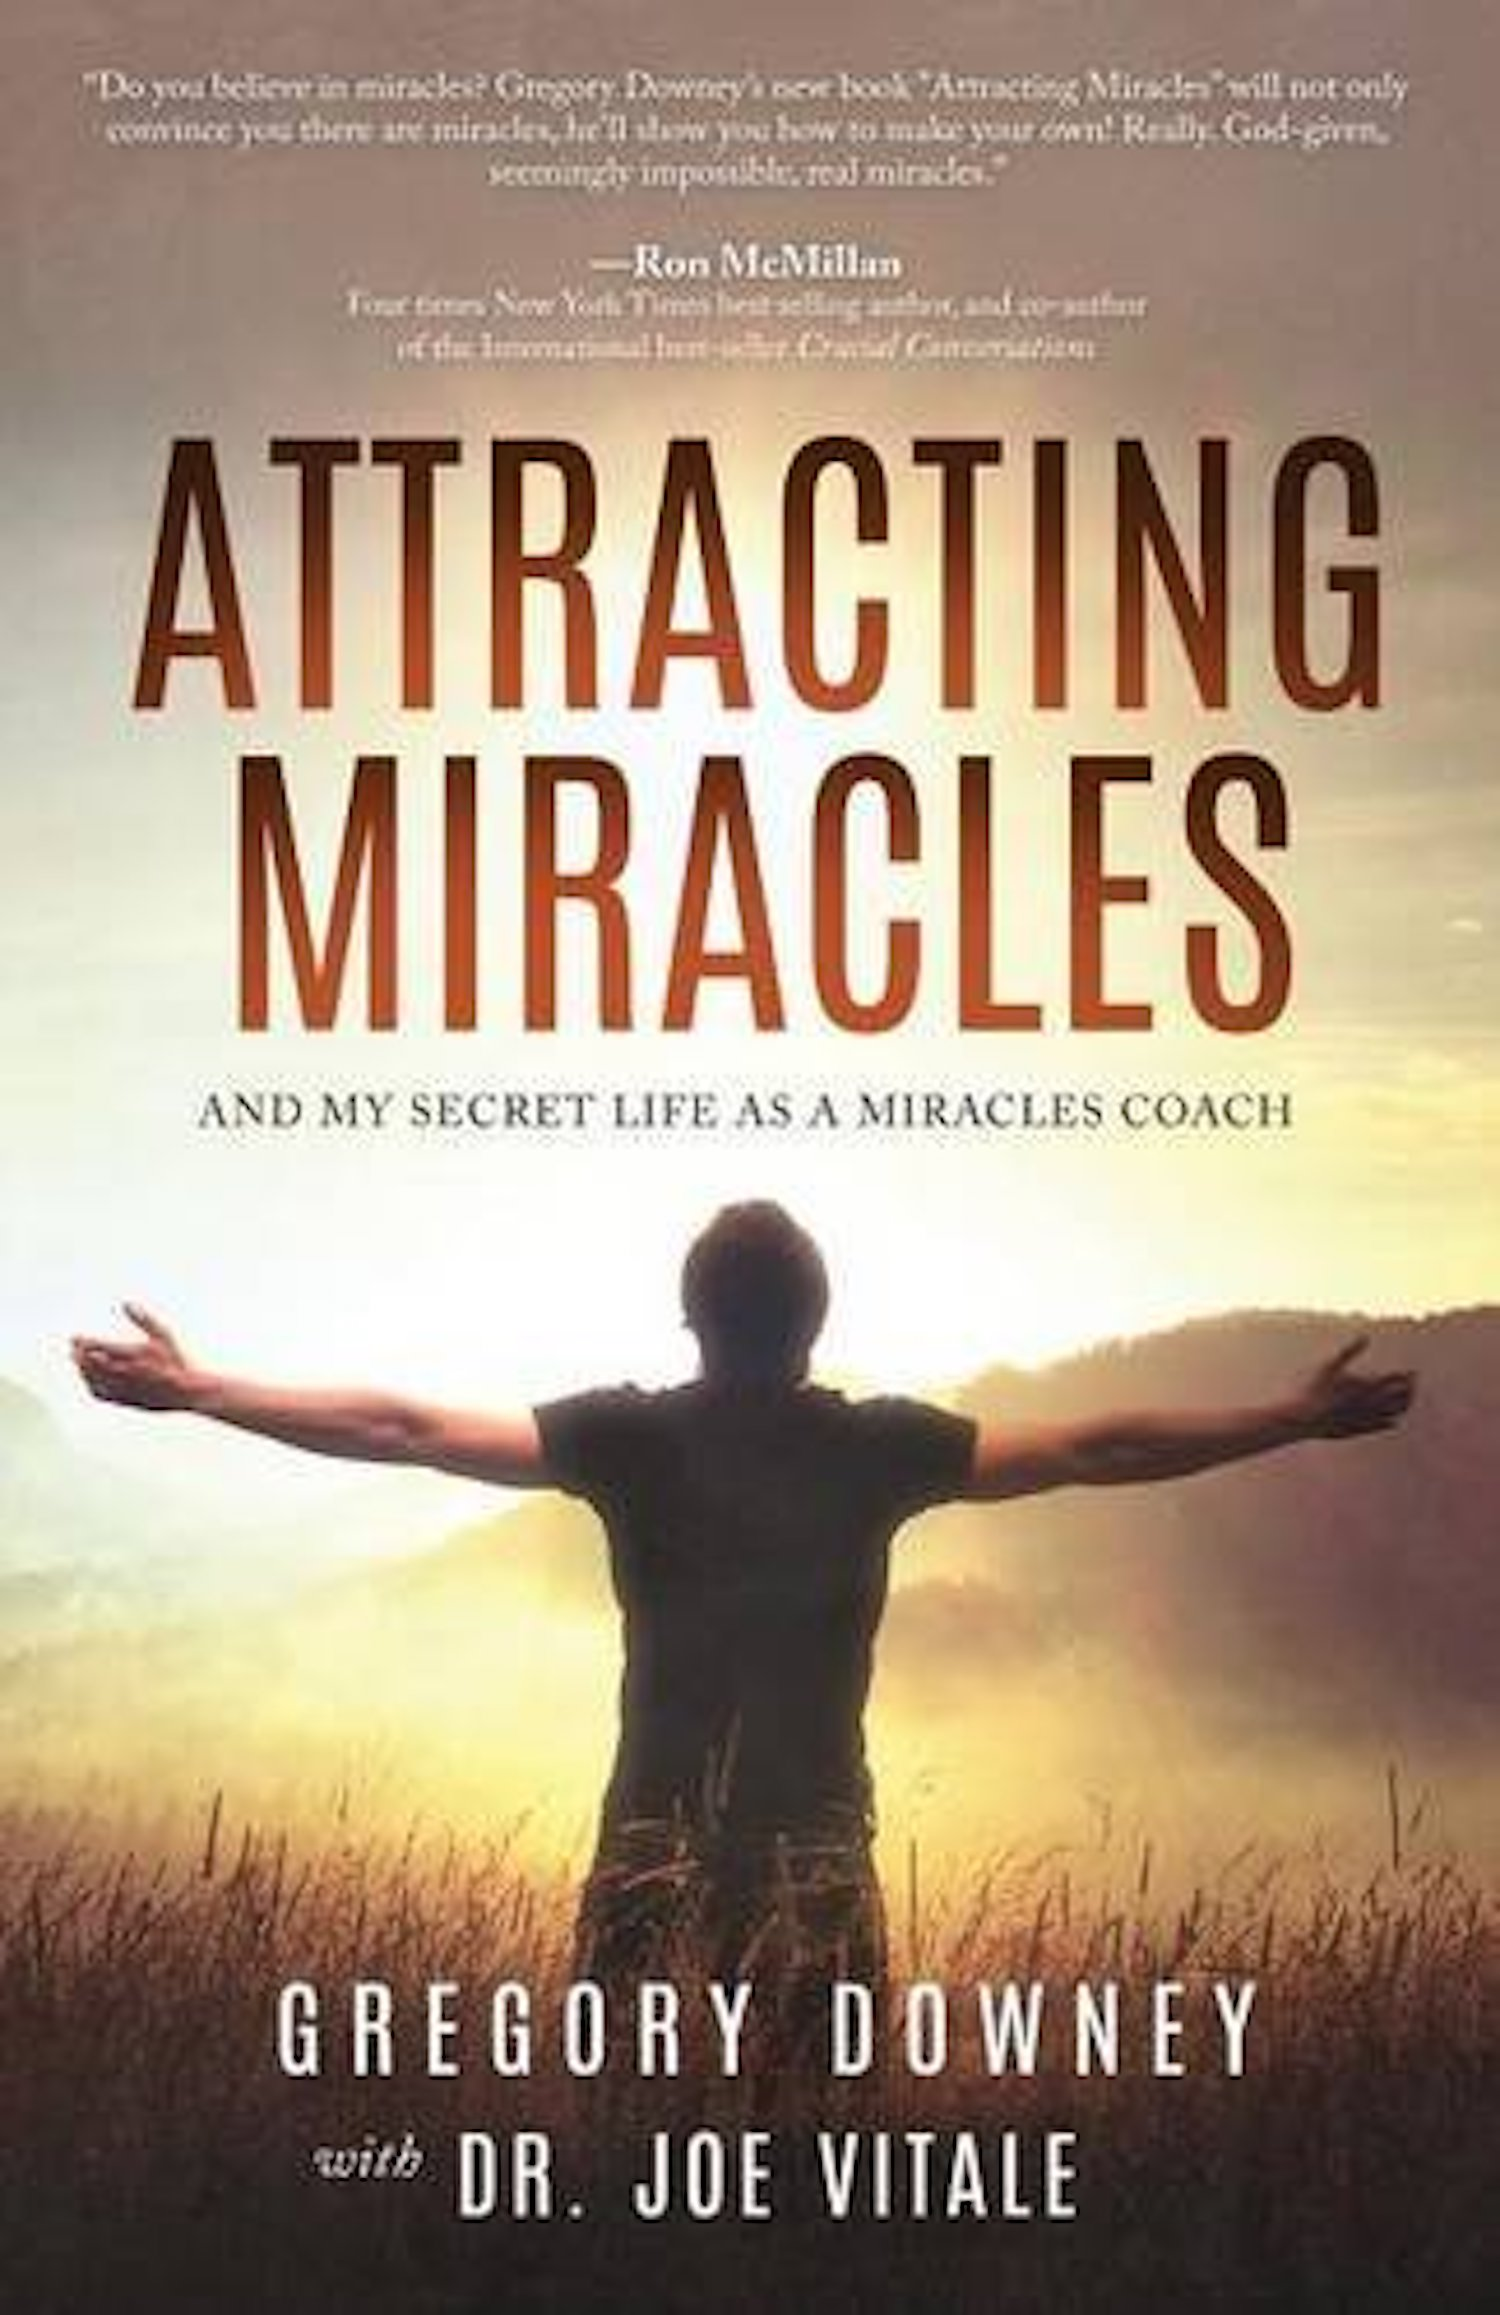 Attracting Miracles